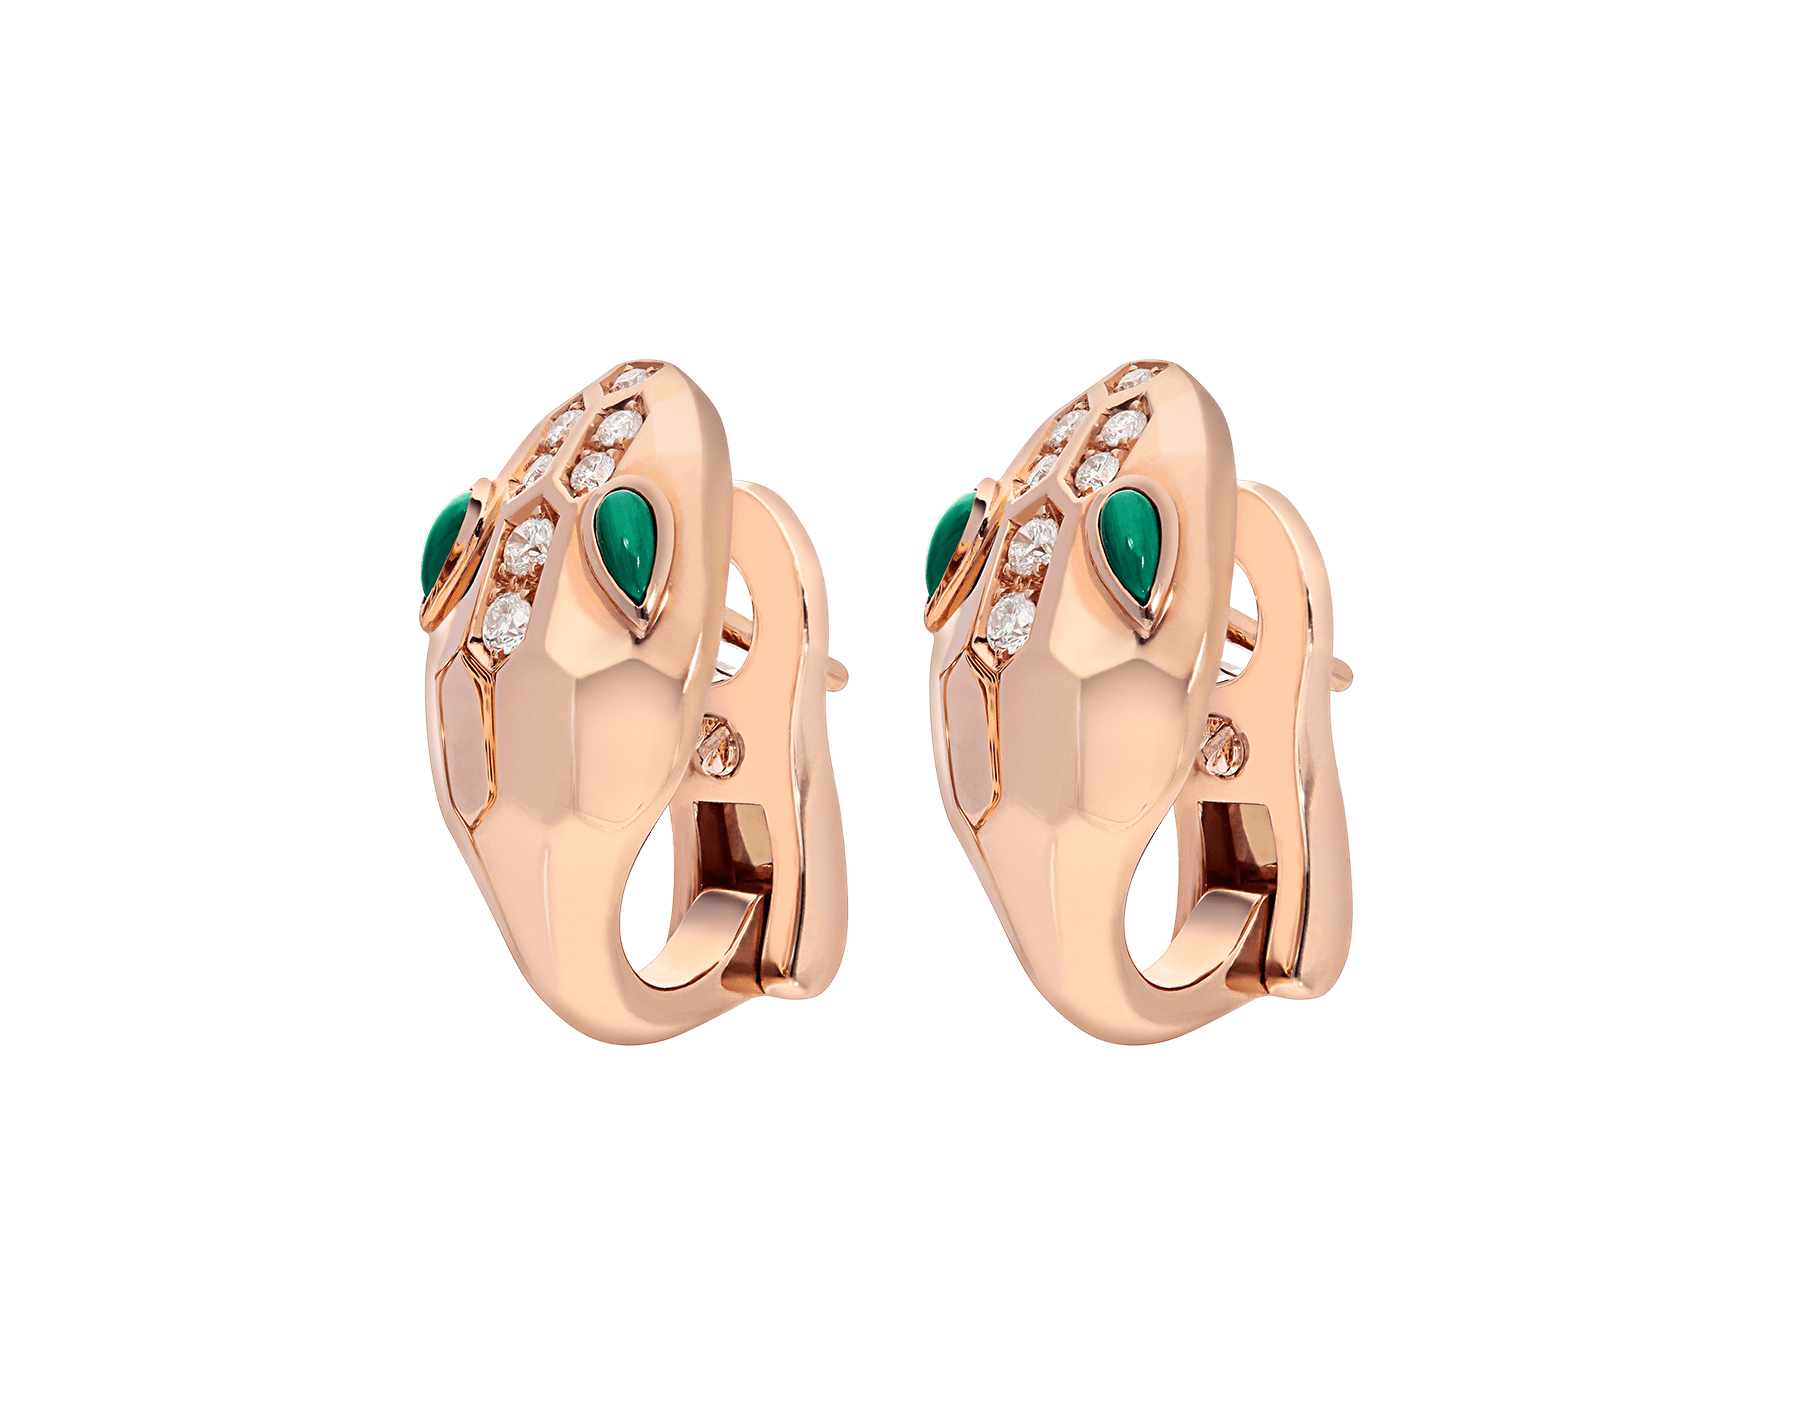 Serpenti earrings in 18 kt rose gold, set with malachite eyes and demi pavé diamonds. 352701 image 2